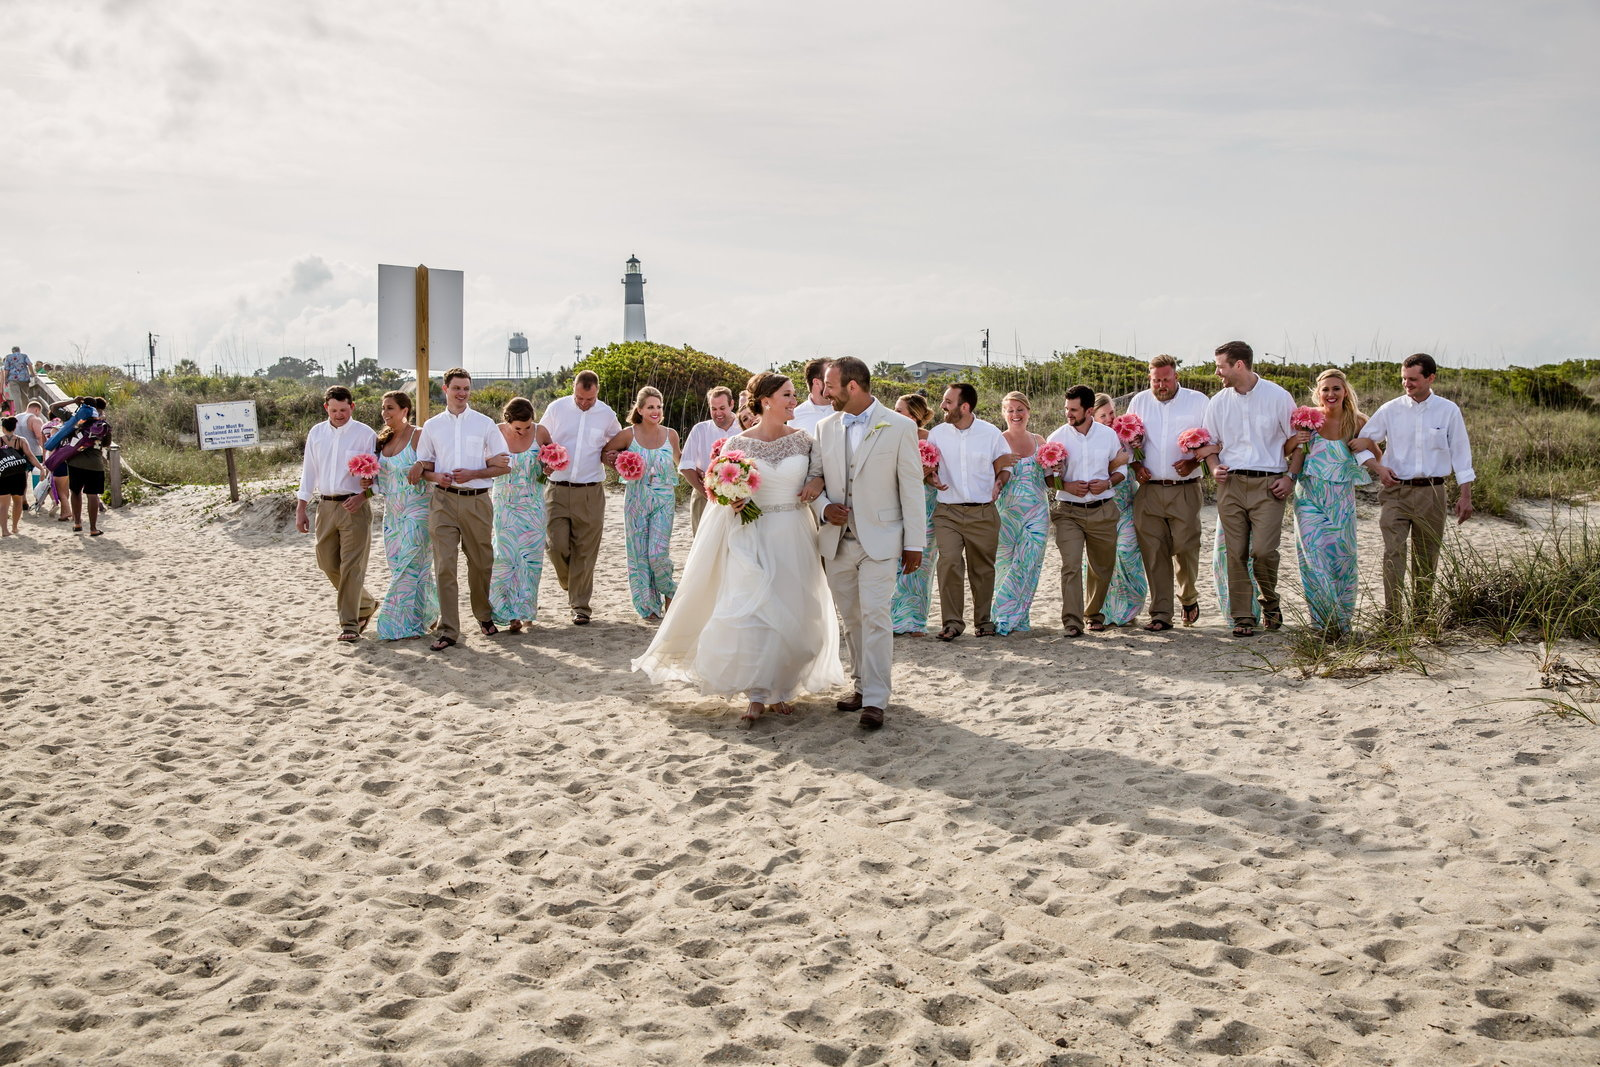 Tybee Island Wedding Photographer, Bobbi Brinkman Photography